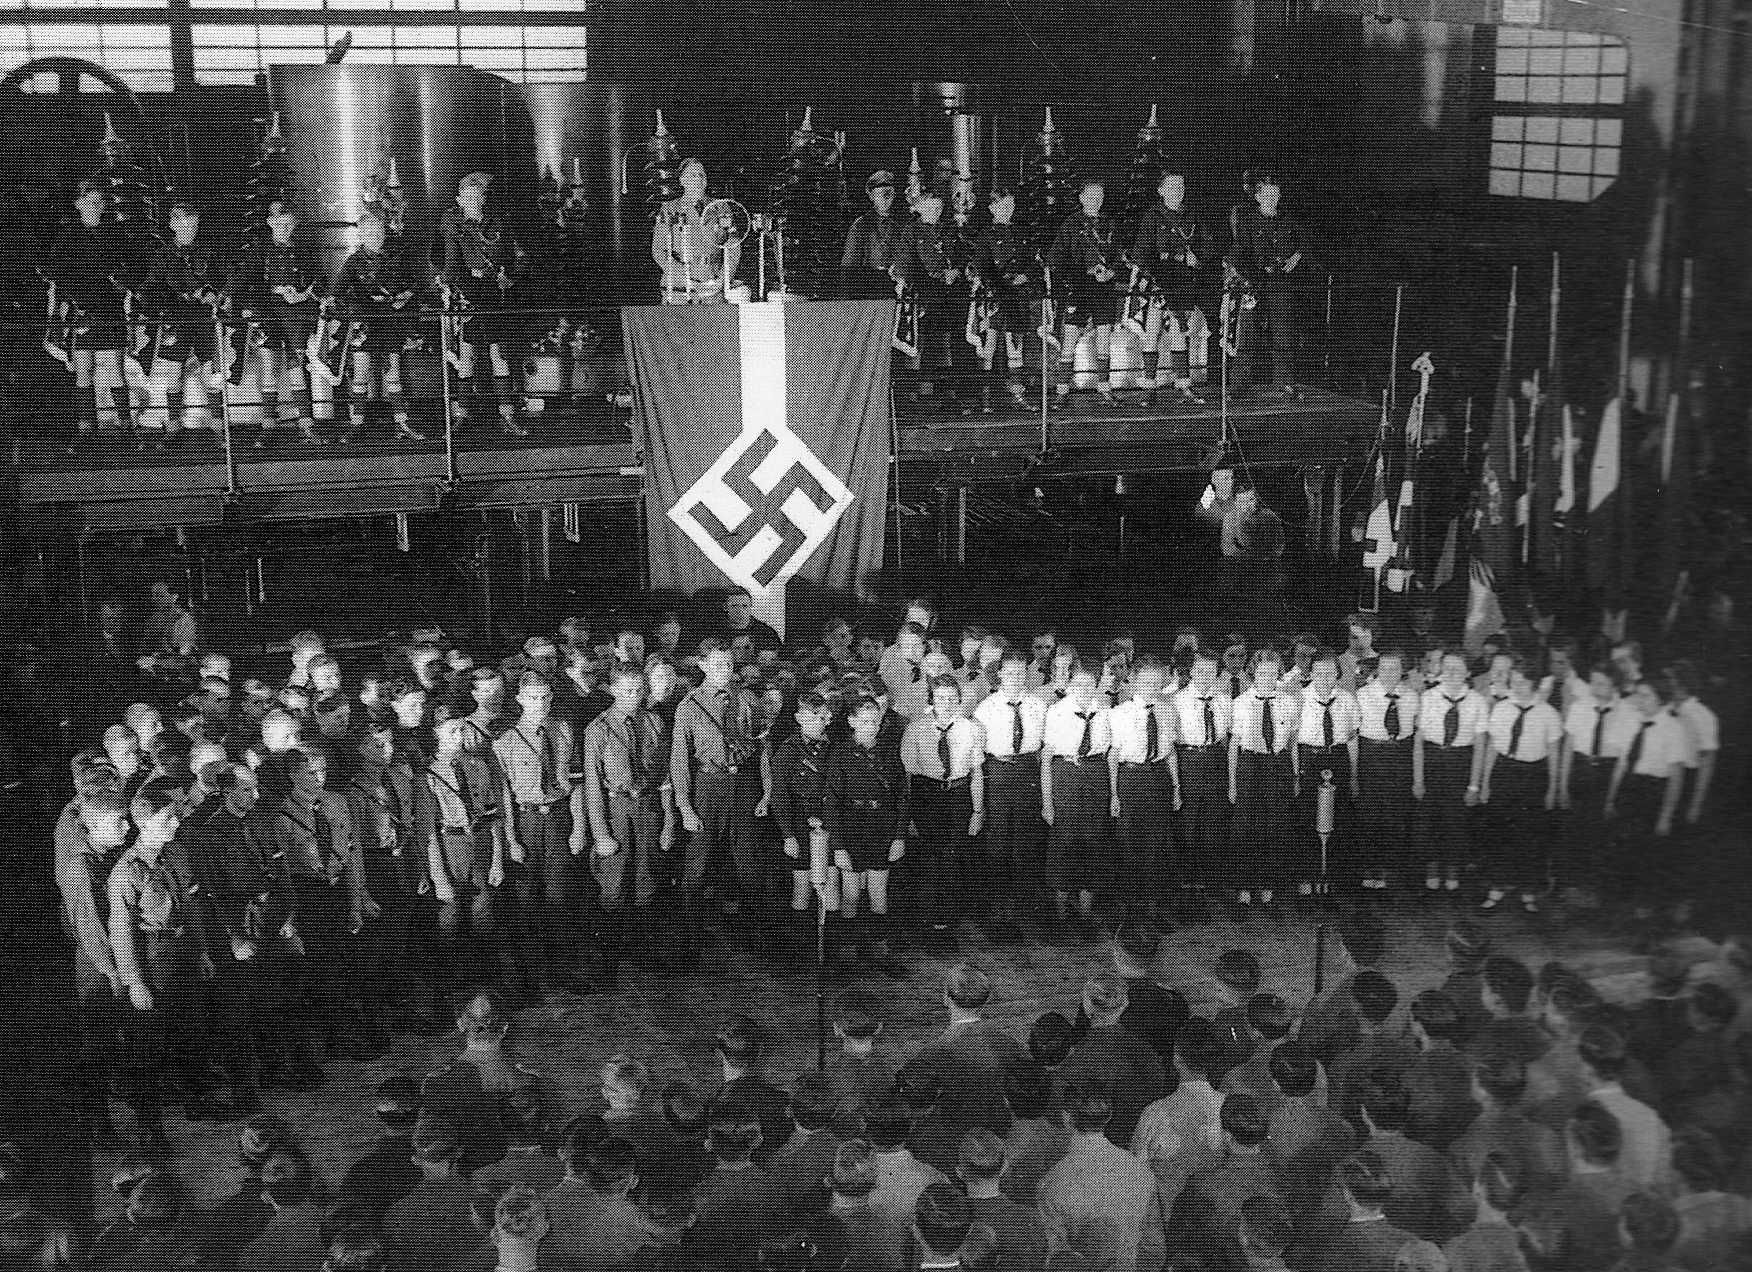 militaryhistoryonline com wwii images bdm3 jpg hitler a hitler youth pledge ceremony used as research for risking exposure by jeanne moran